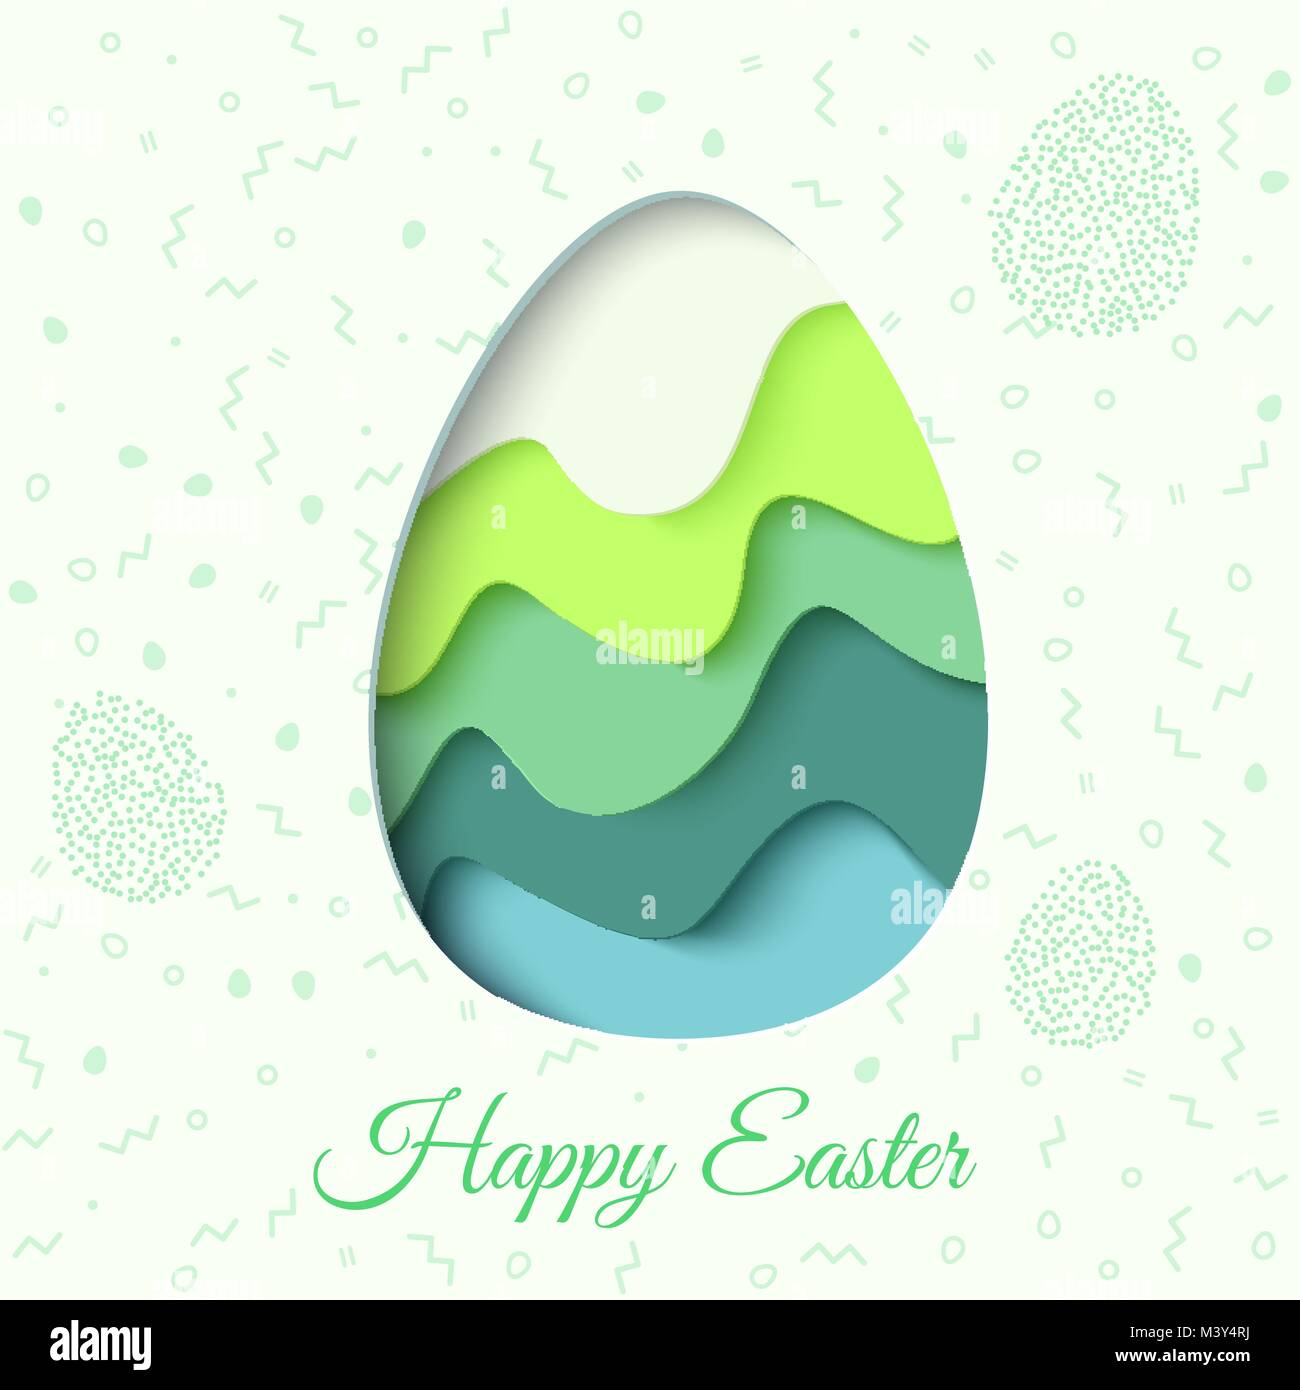 happy easter greeting card 3d paper cut easter egg concept design